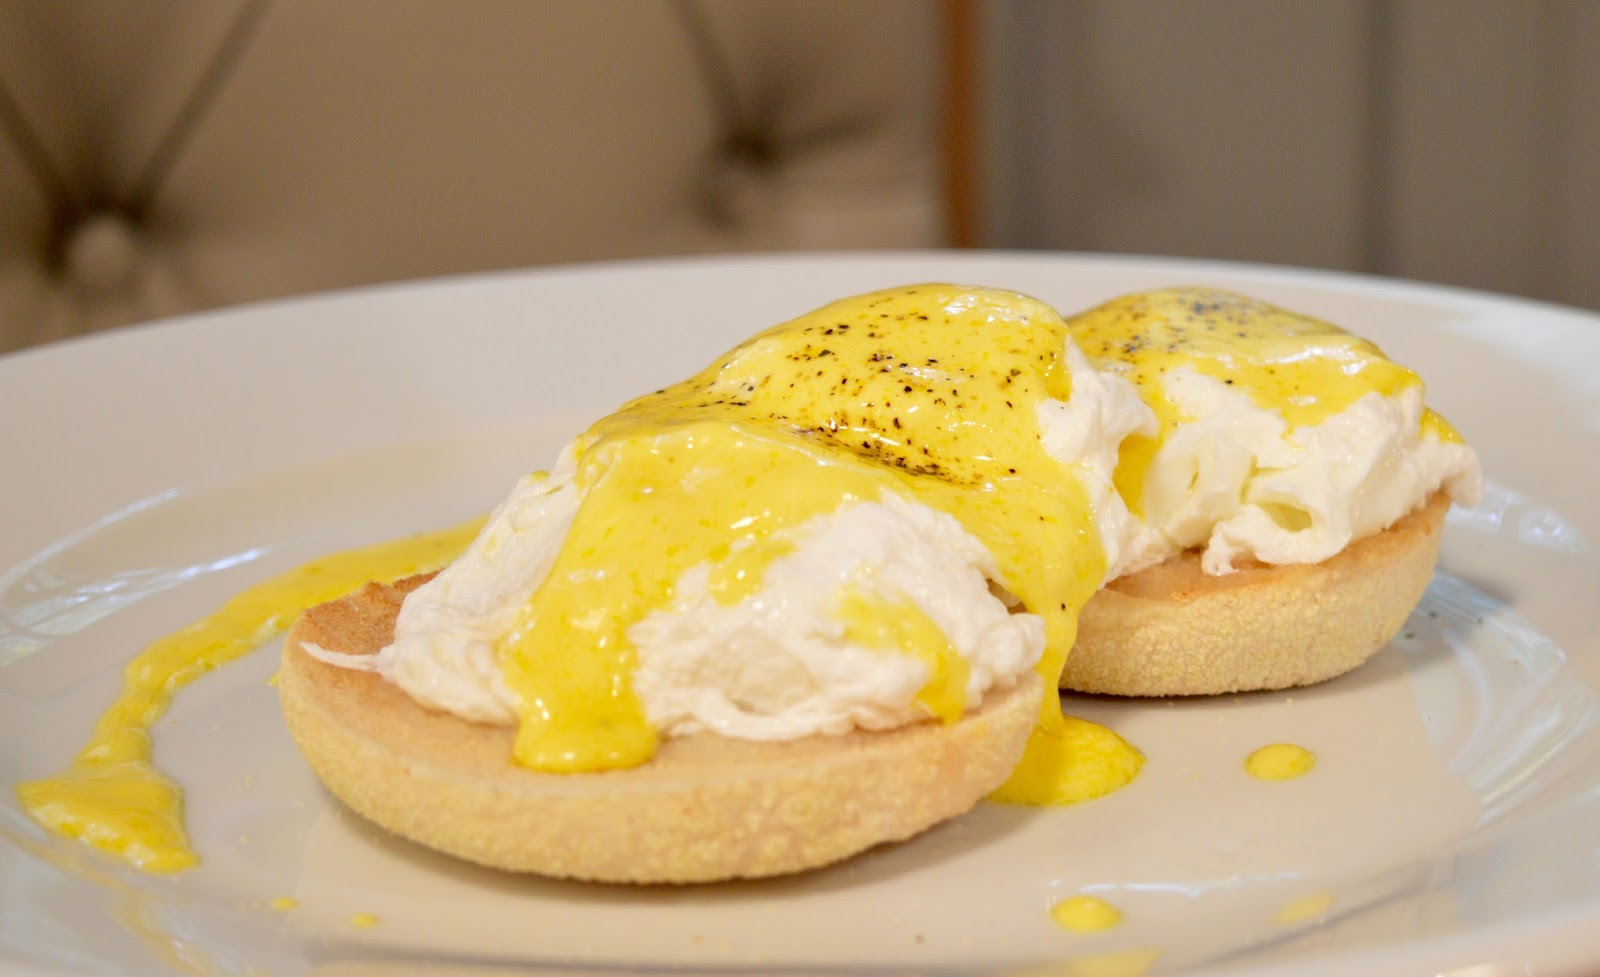 The Kingslodge Inn, Durham   A Review - A lovely budget hotel near the train station and city centre - eggs benedict